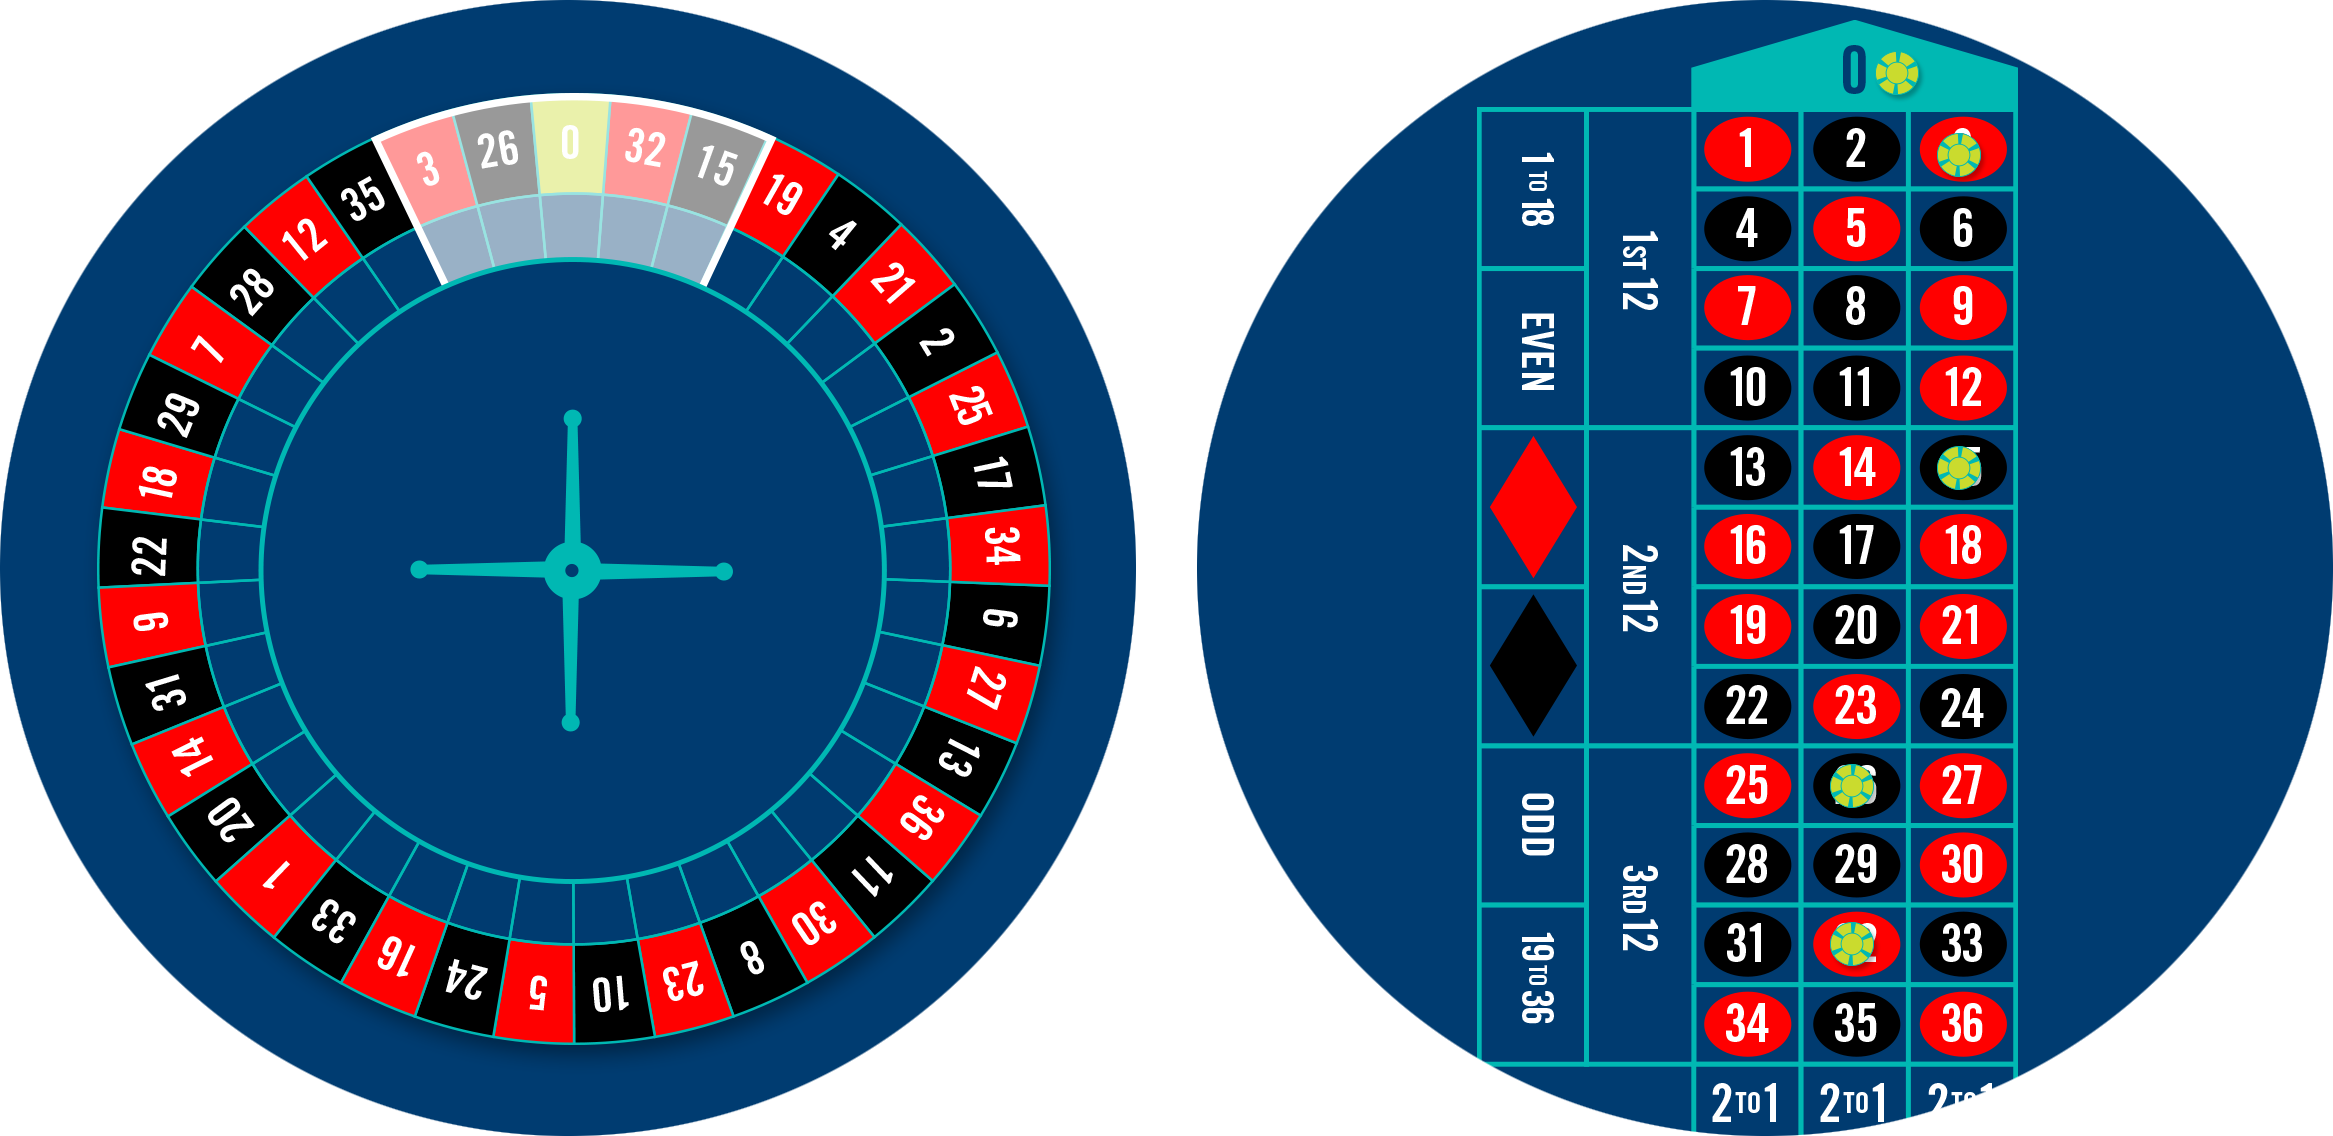 Roulette wheel with neighbours bet highlighted, and a roulette table with 5 chips placed for the nieghbours bets.